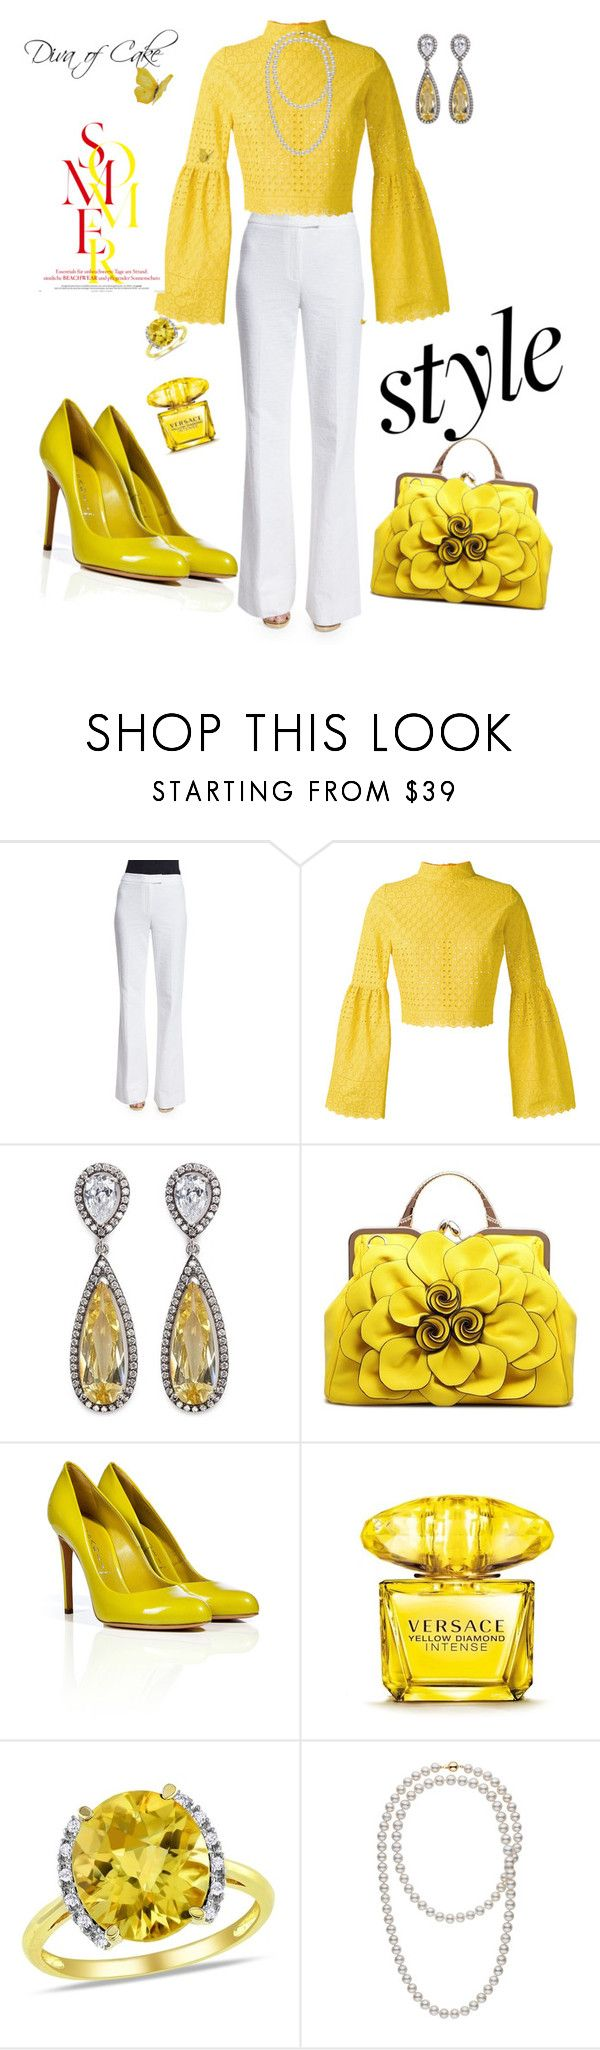 """""""Yellow and White"""" by Diva of Cake  on Polyvore featuring Diane Von Furstenberg, Daizy Shely, CZ by Kenneth Jay Lane, Casadei, Versace and Ice"""